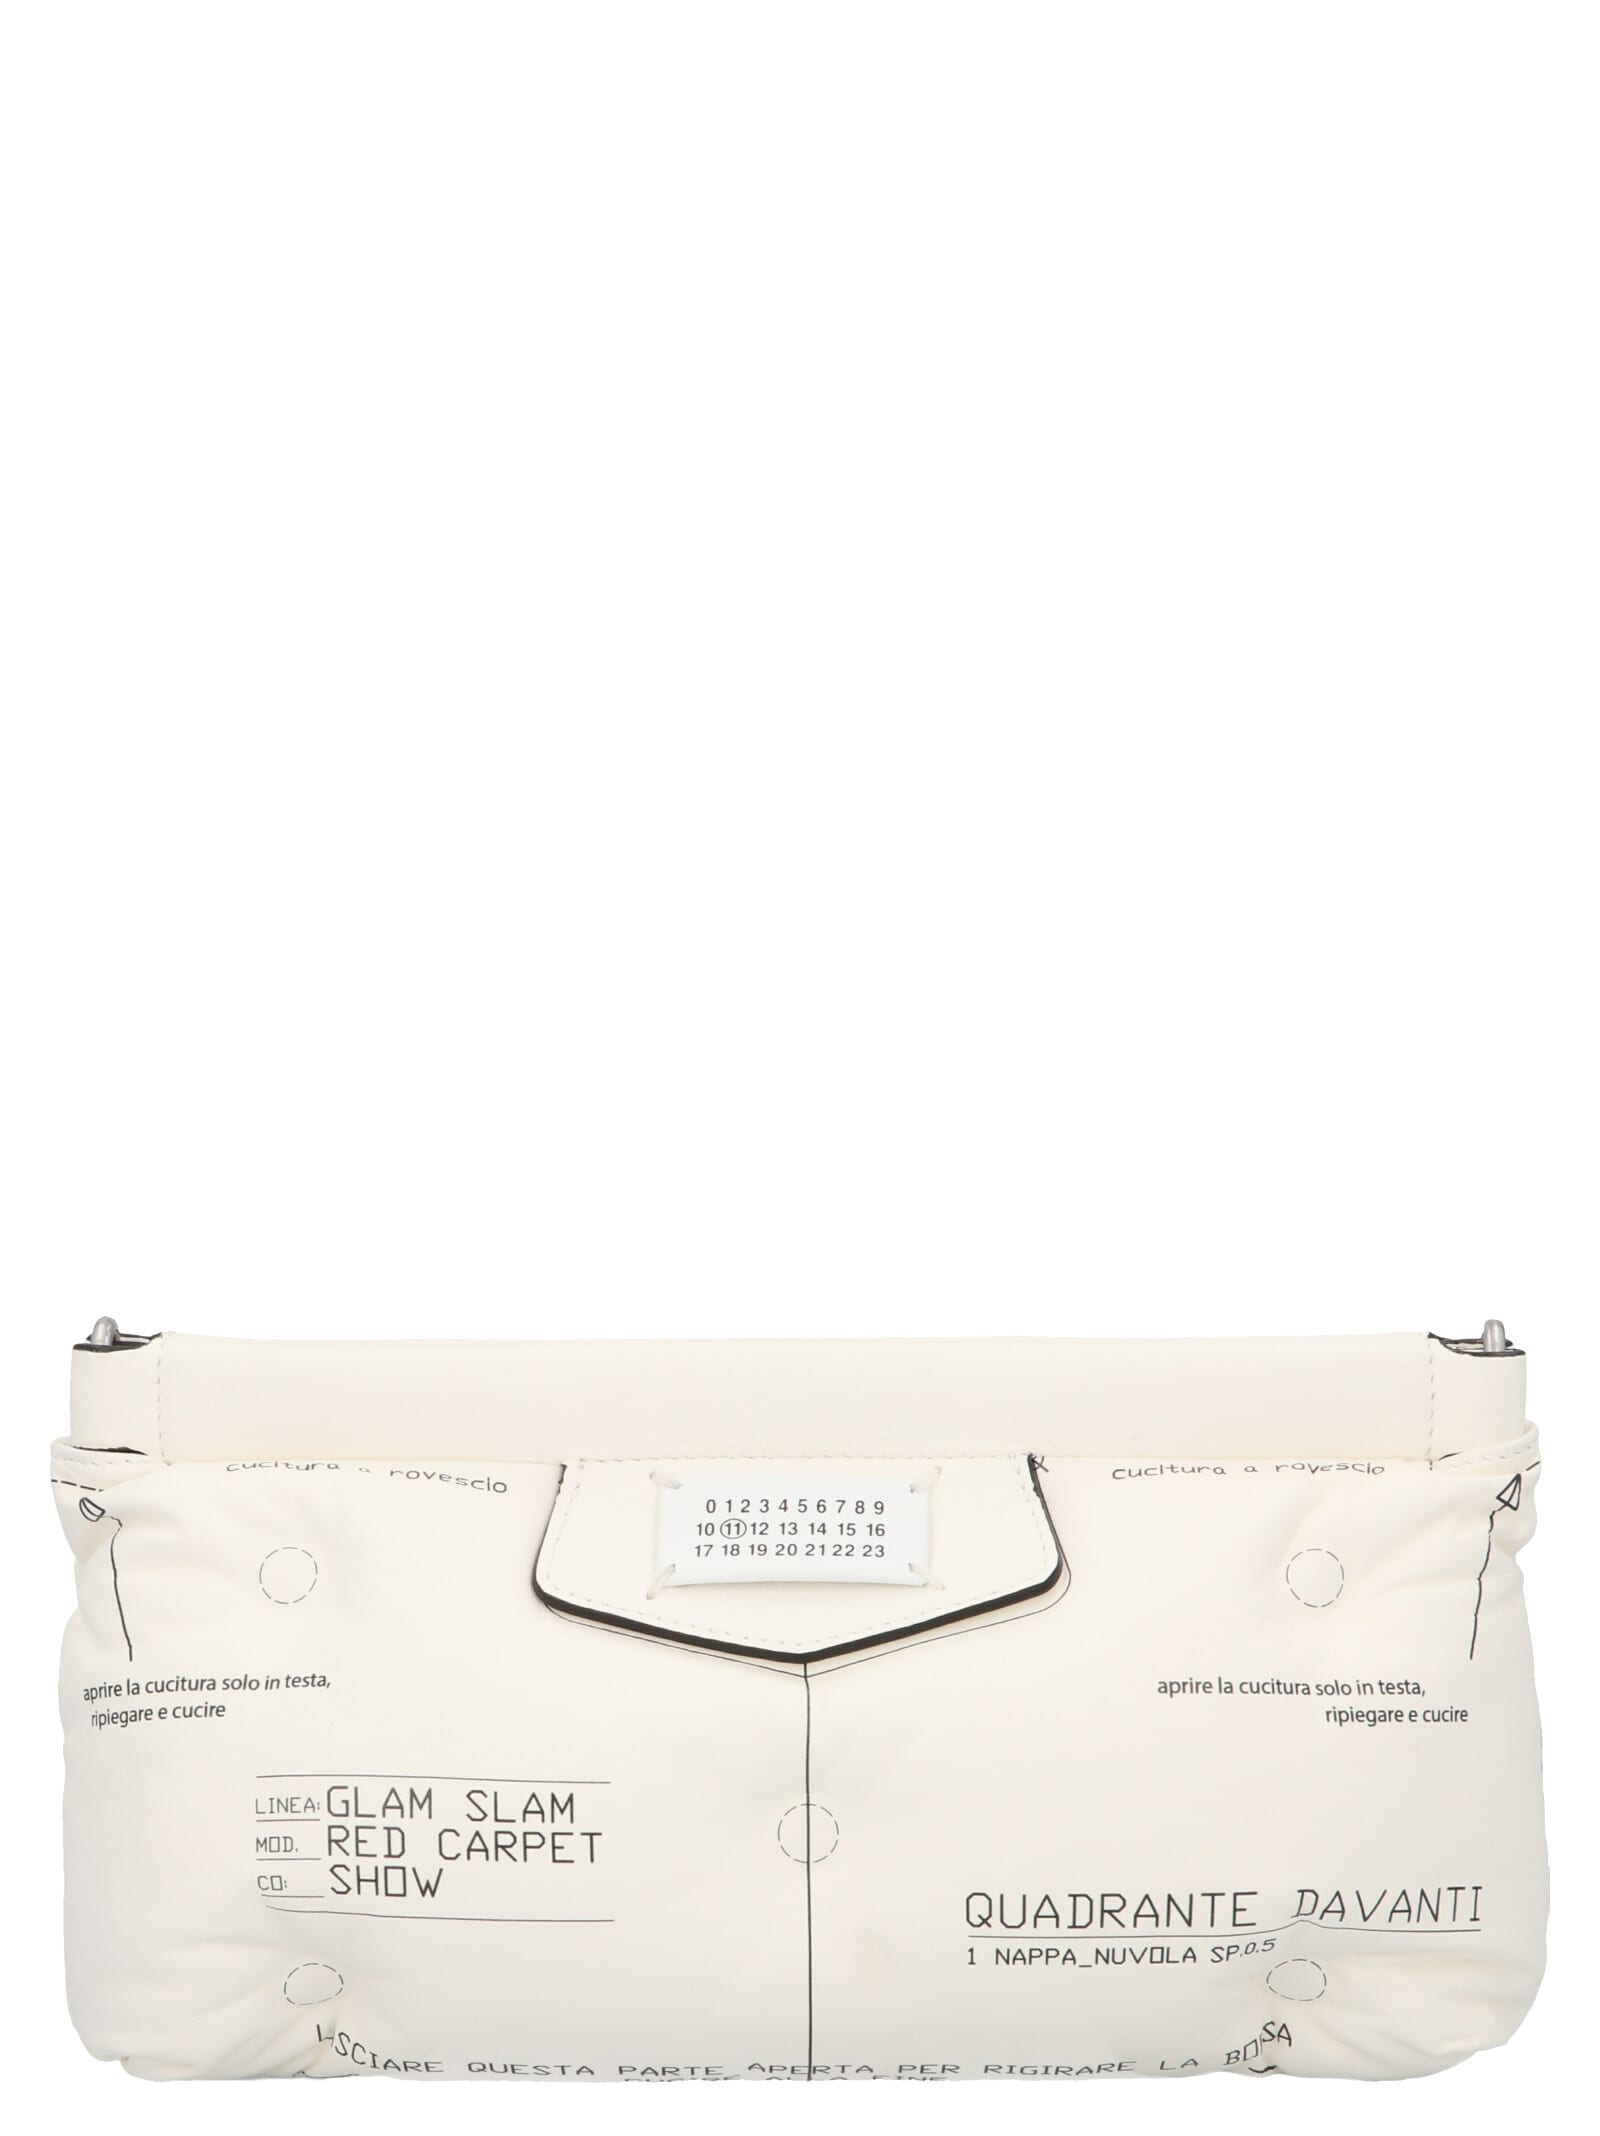 MAISON MARGIELA RED CARPET BAG